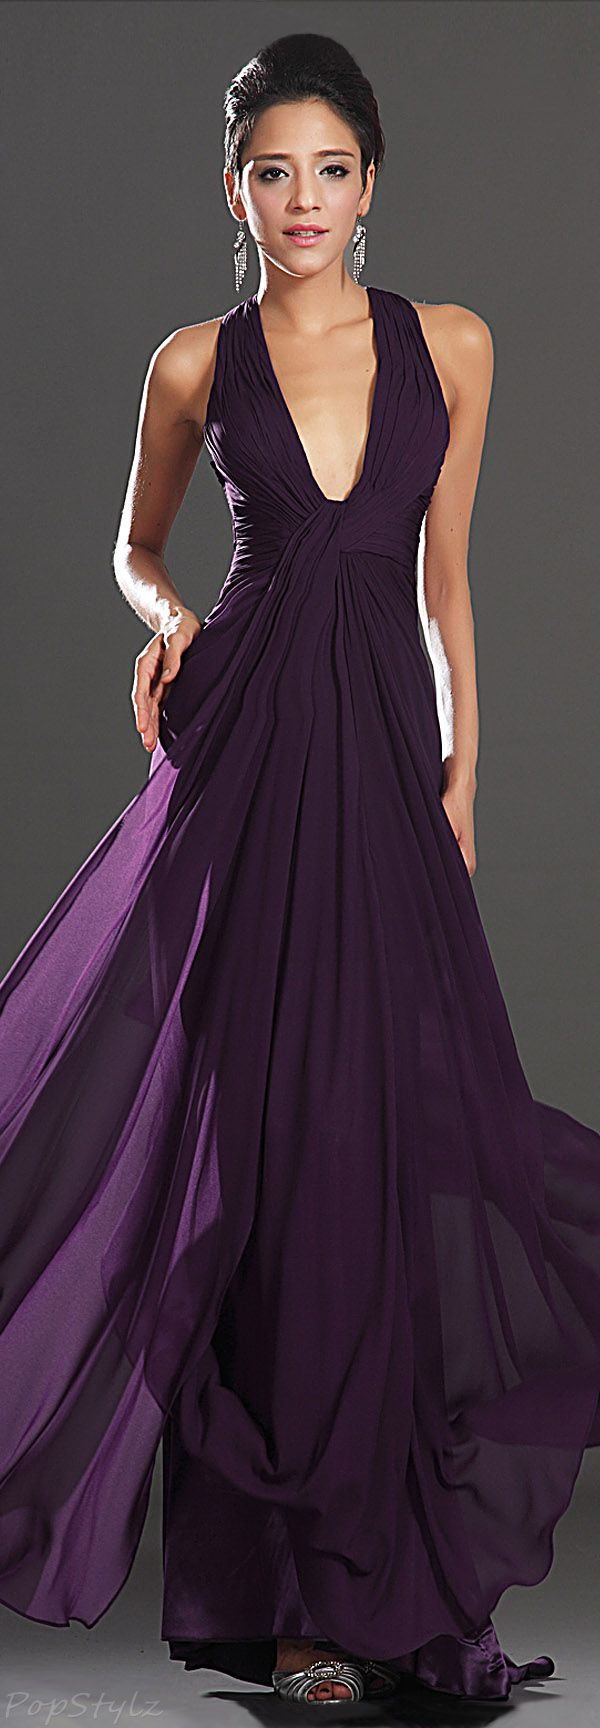 eDressit 00130806 Halter Evening Gown